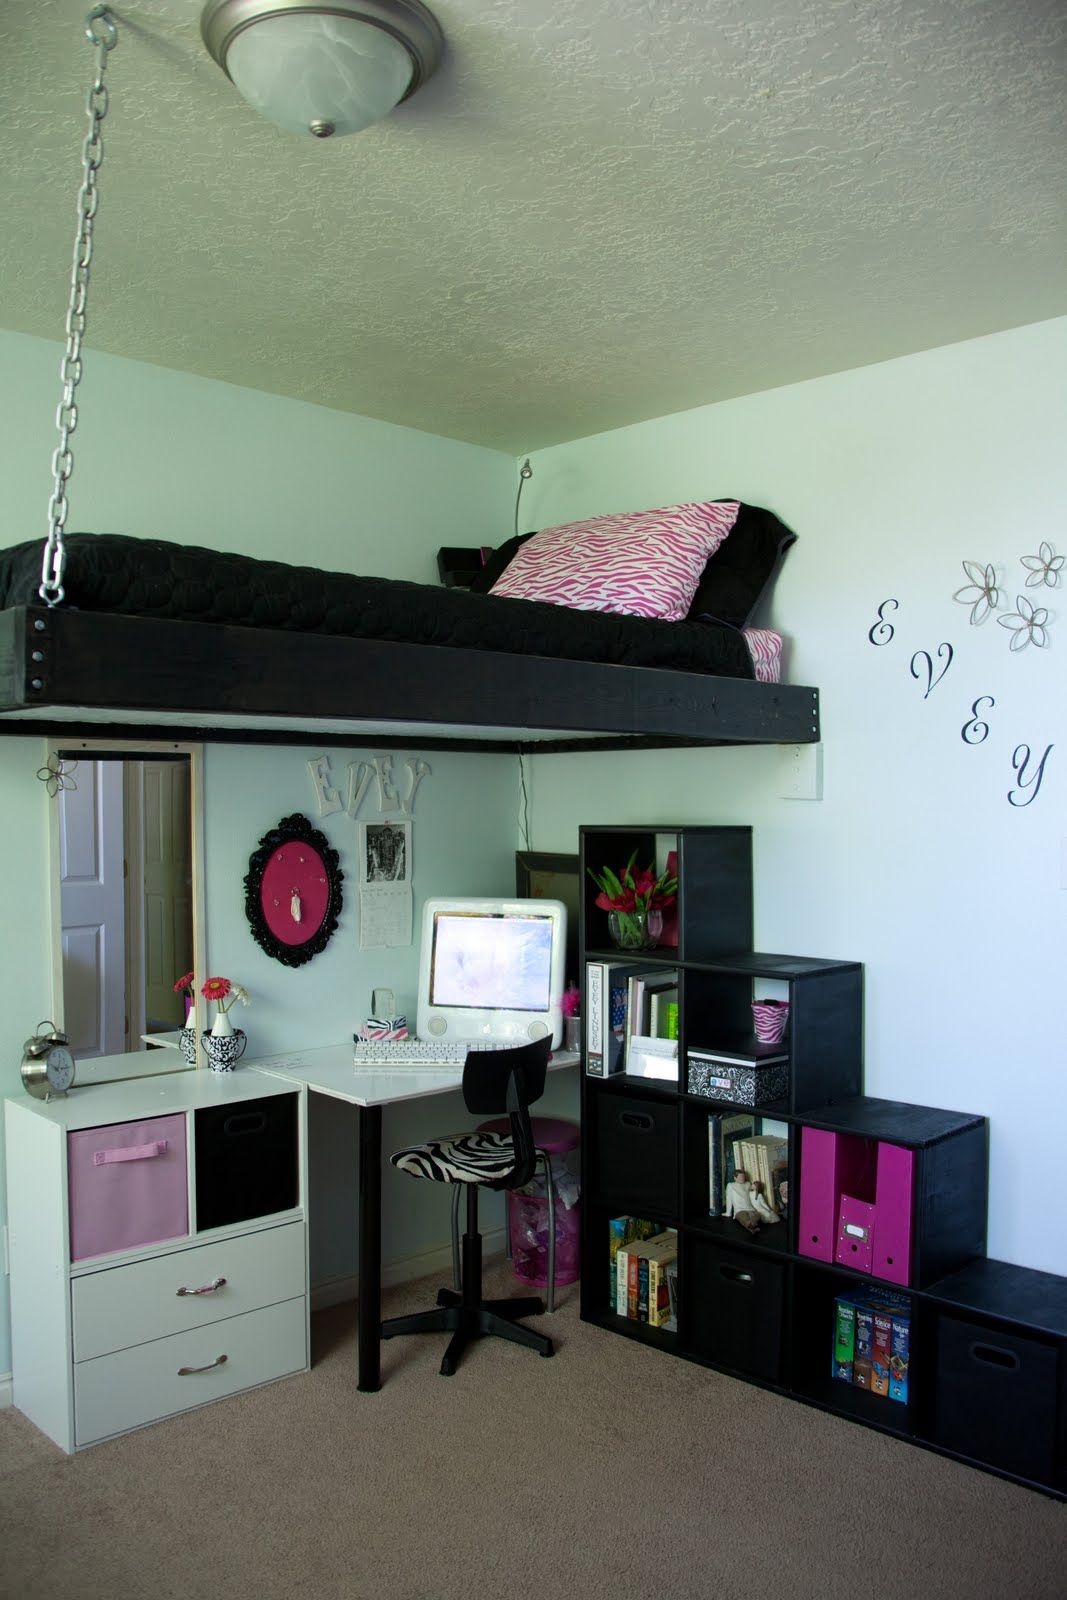 Loft bed ideas kids  It has taken me FOREVER to finish the kids rooms We started in